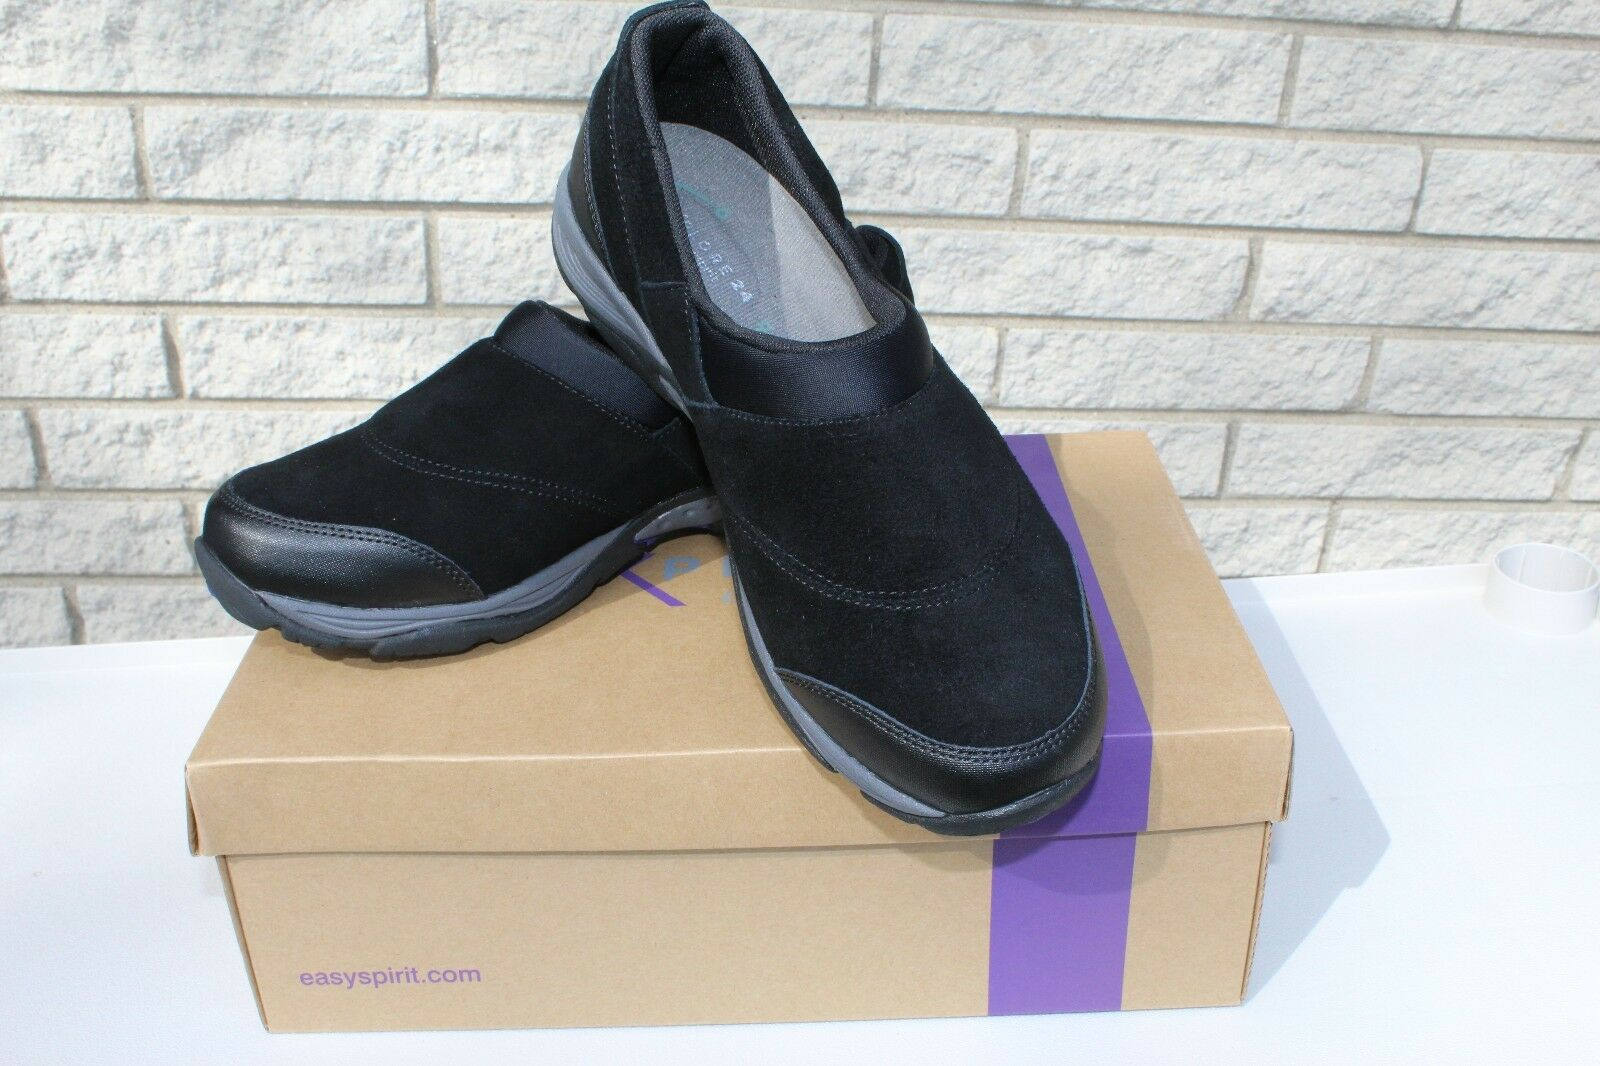 NEW IN BOX  Easy Spirit Explore 24 eseverything Femme Chaussure Turnchaussures Tennis-U Choisissez